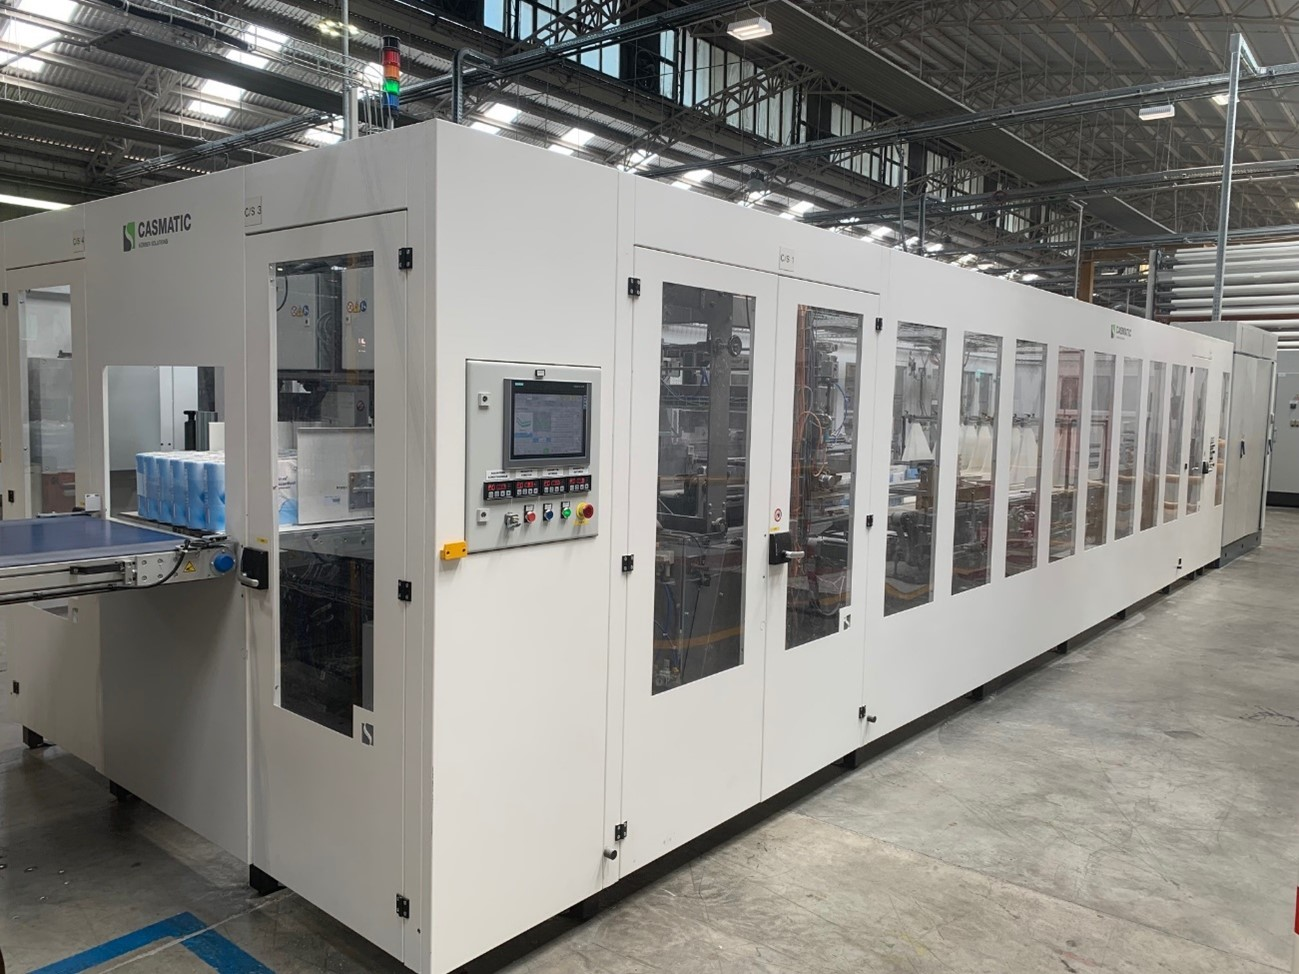 , Lucart chooses Kӧrber integrated solutions to guarantee quality and performance even in packaging